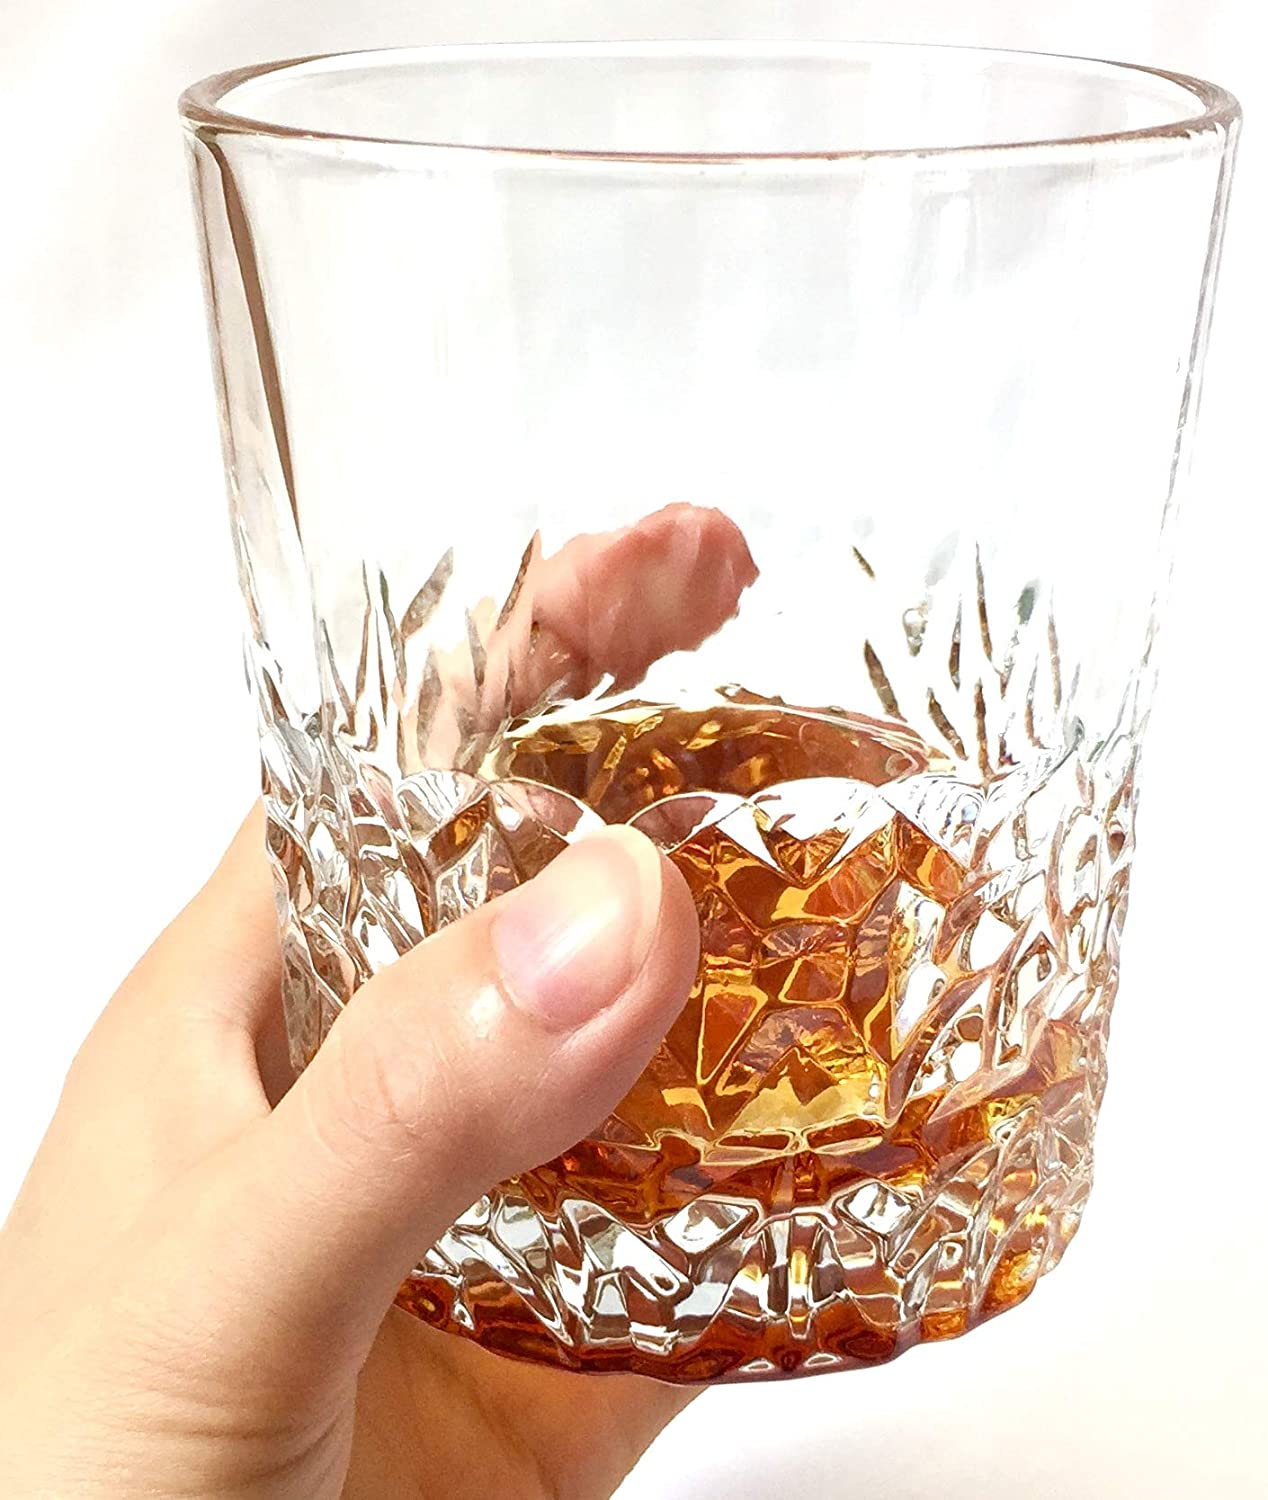 Old Fashioned Glass Tasting Cups Scotch Glasses Bourbon Premium Crystal Whiskey Glasses Set of 6 Tumblers for Drinking Irish Whisky Ice Cube, 9.6 oz Tequila Large Lead-Free Crystal Glass